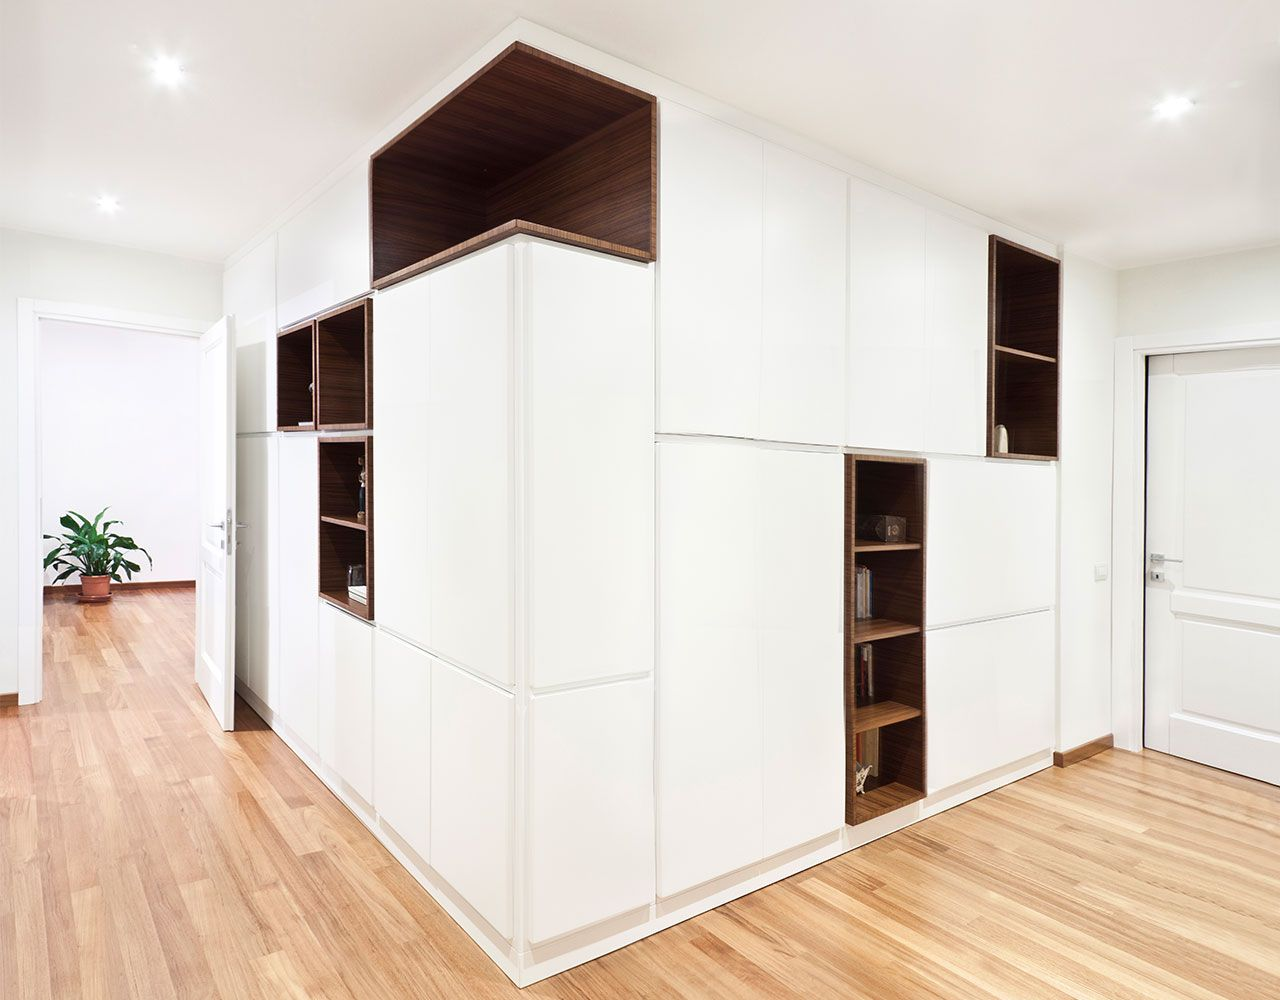 Modern Hallway Decoration Design Ideas. Another great idea to arrange the storage system in the spacious hall